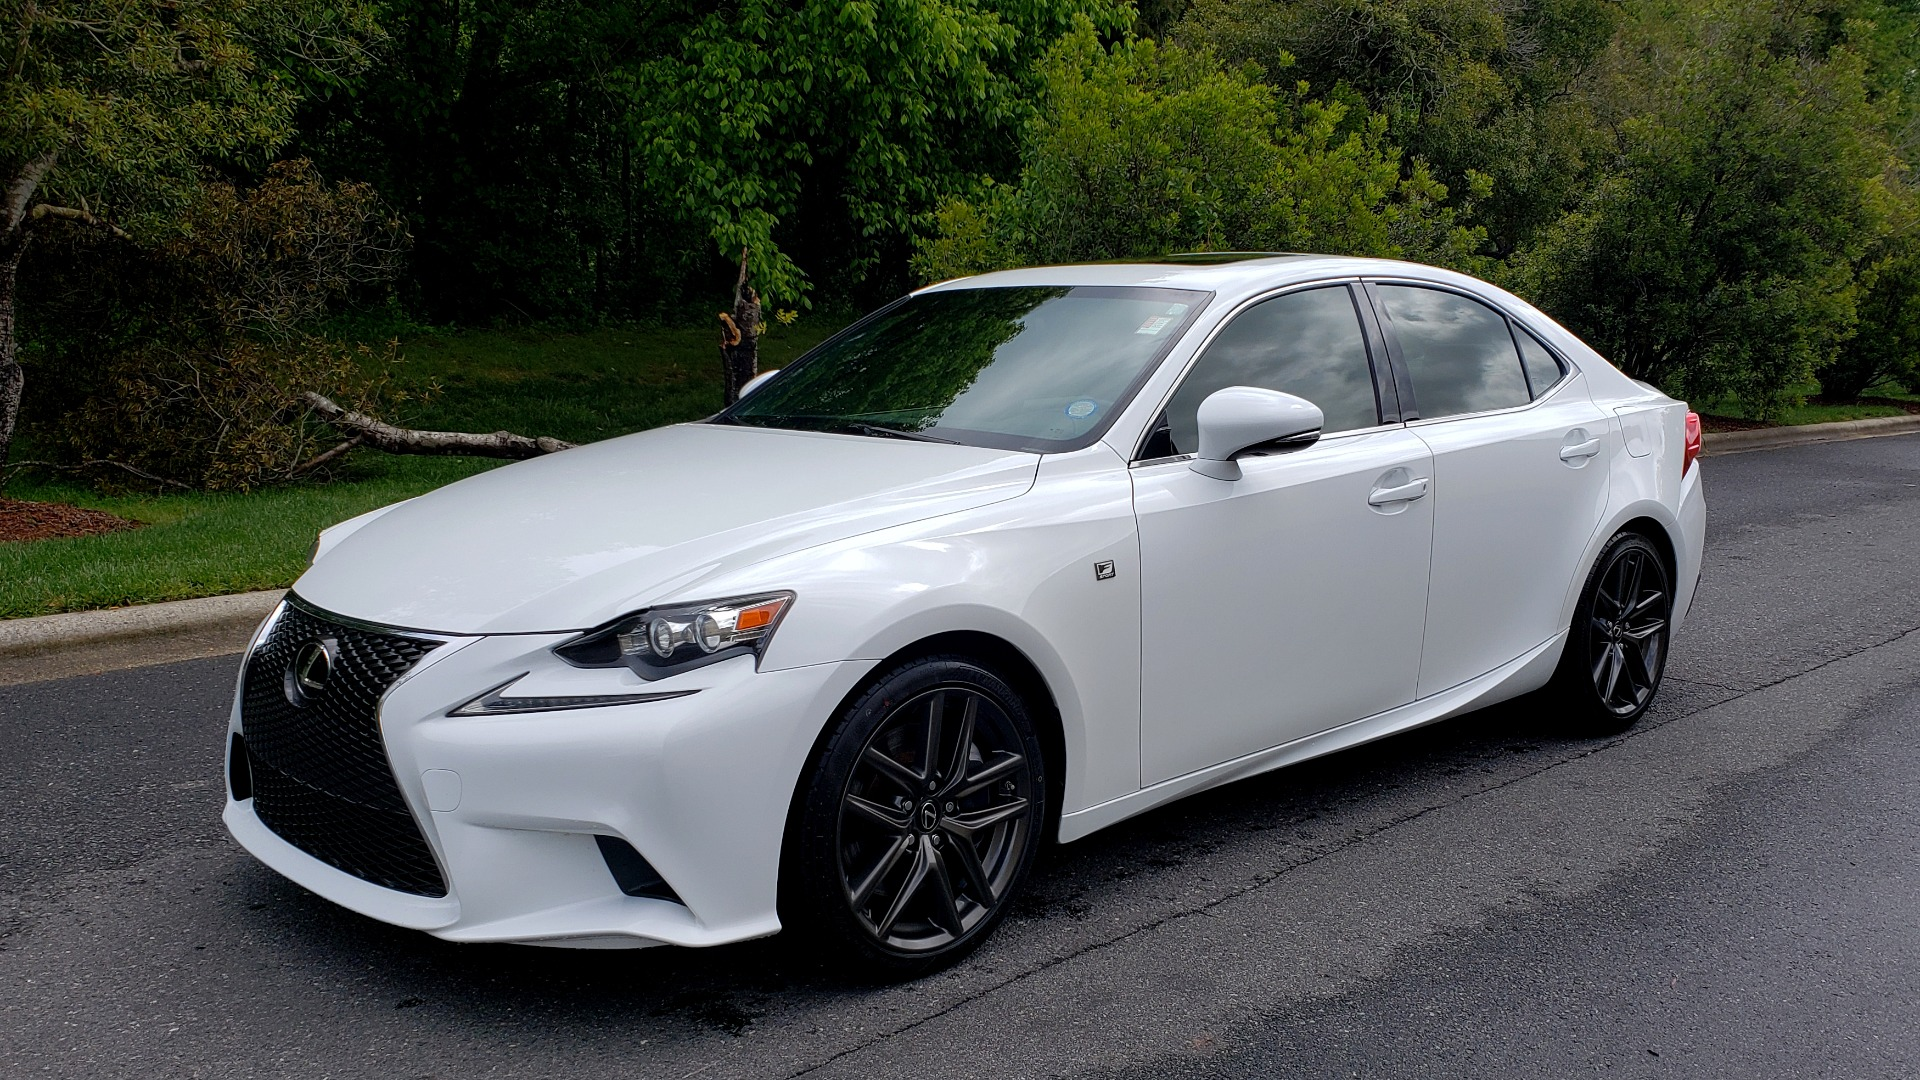 Used 2014 Lexus IS 350 F-SPORT / NAV / SUNROOF / REARVIEW / BSM / MARK LEV SND for sale Sold at Formula Imports in Charlotte NC 28227 1